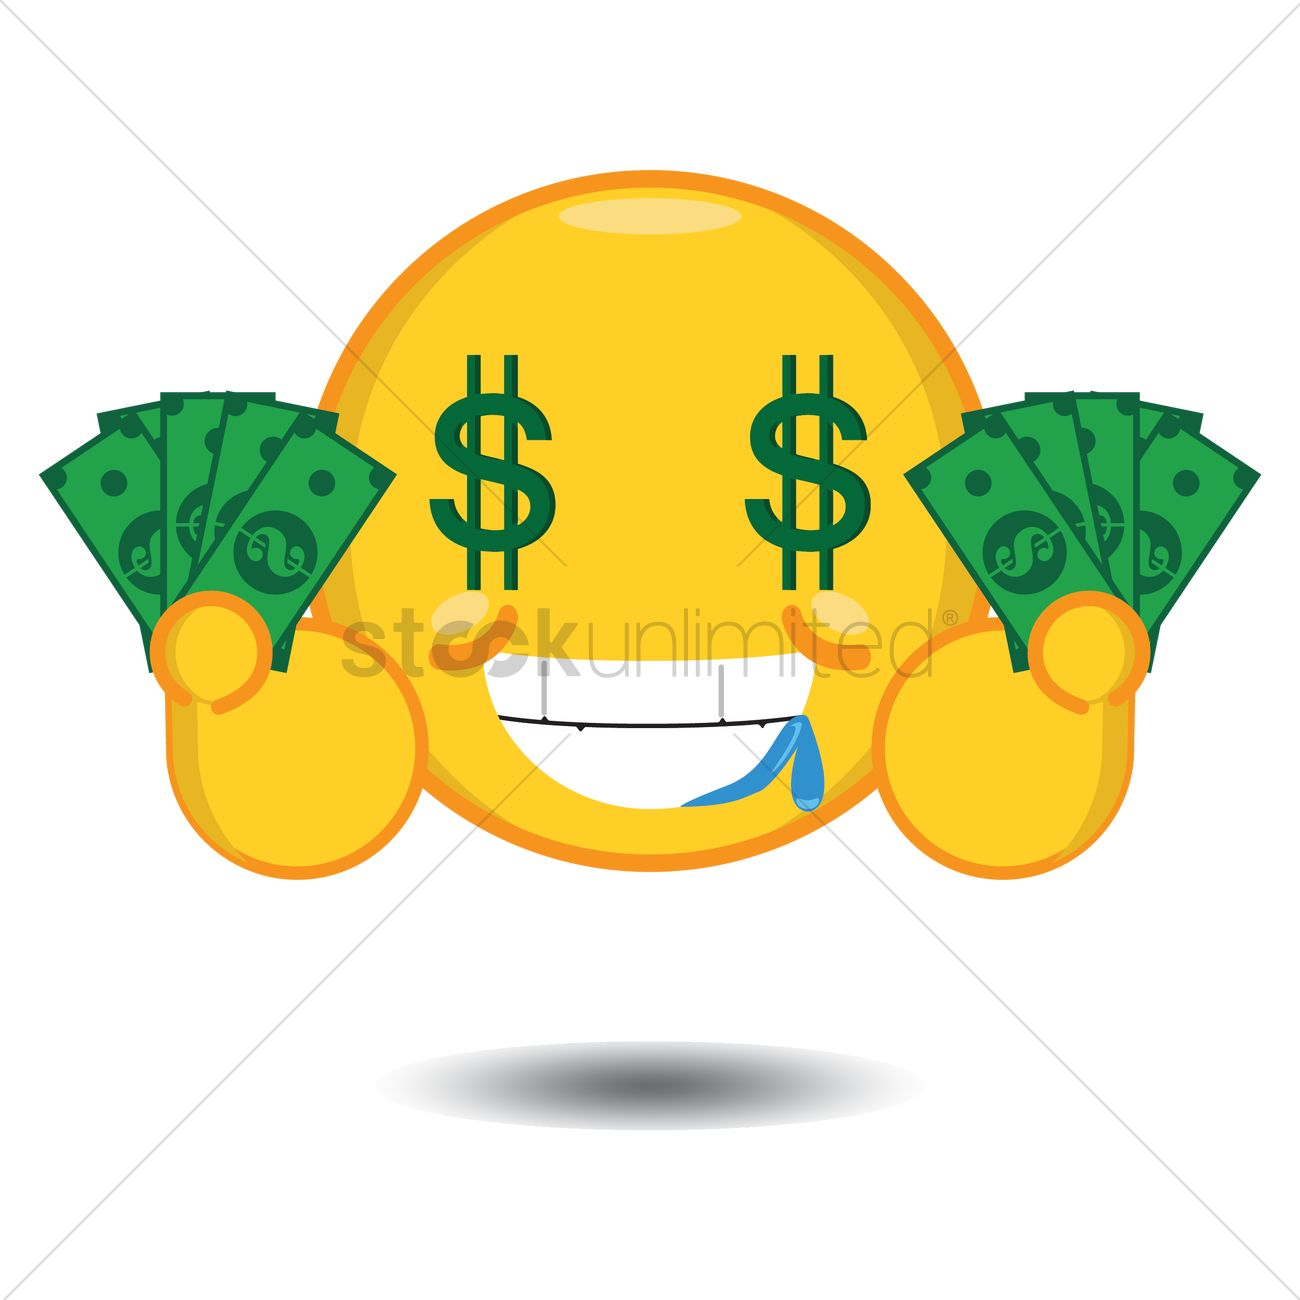 Smiley with dollar sign eyes holding money Vector Image - 1283925